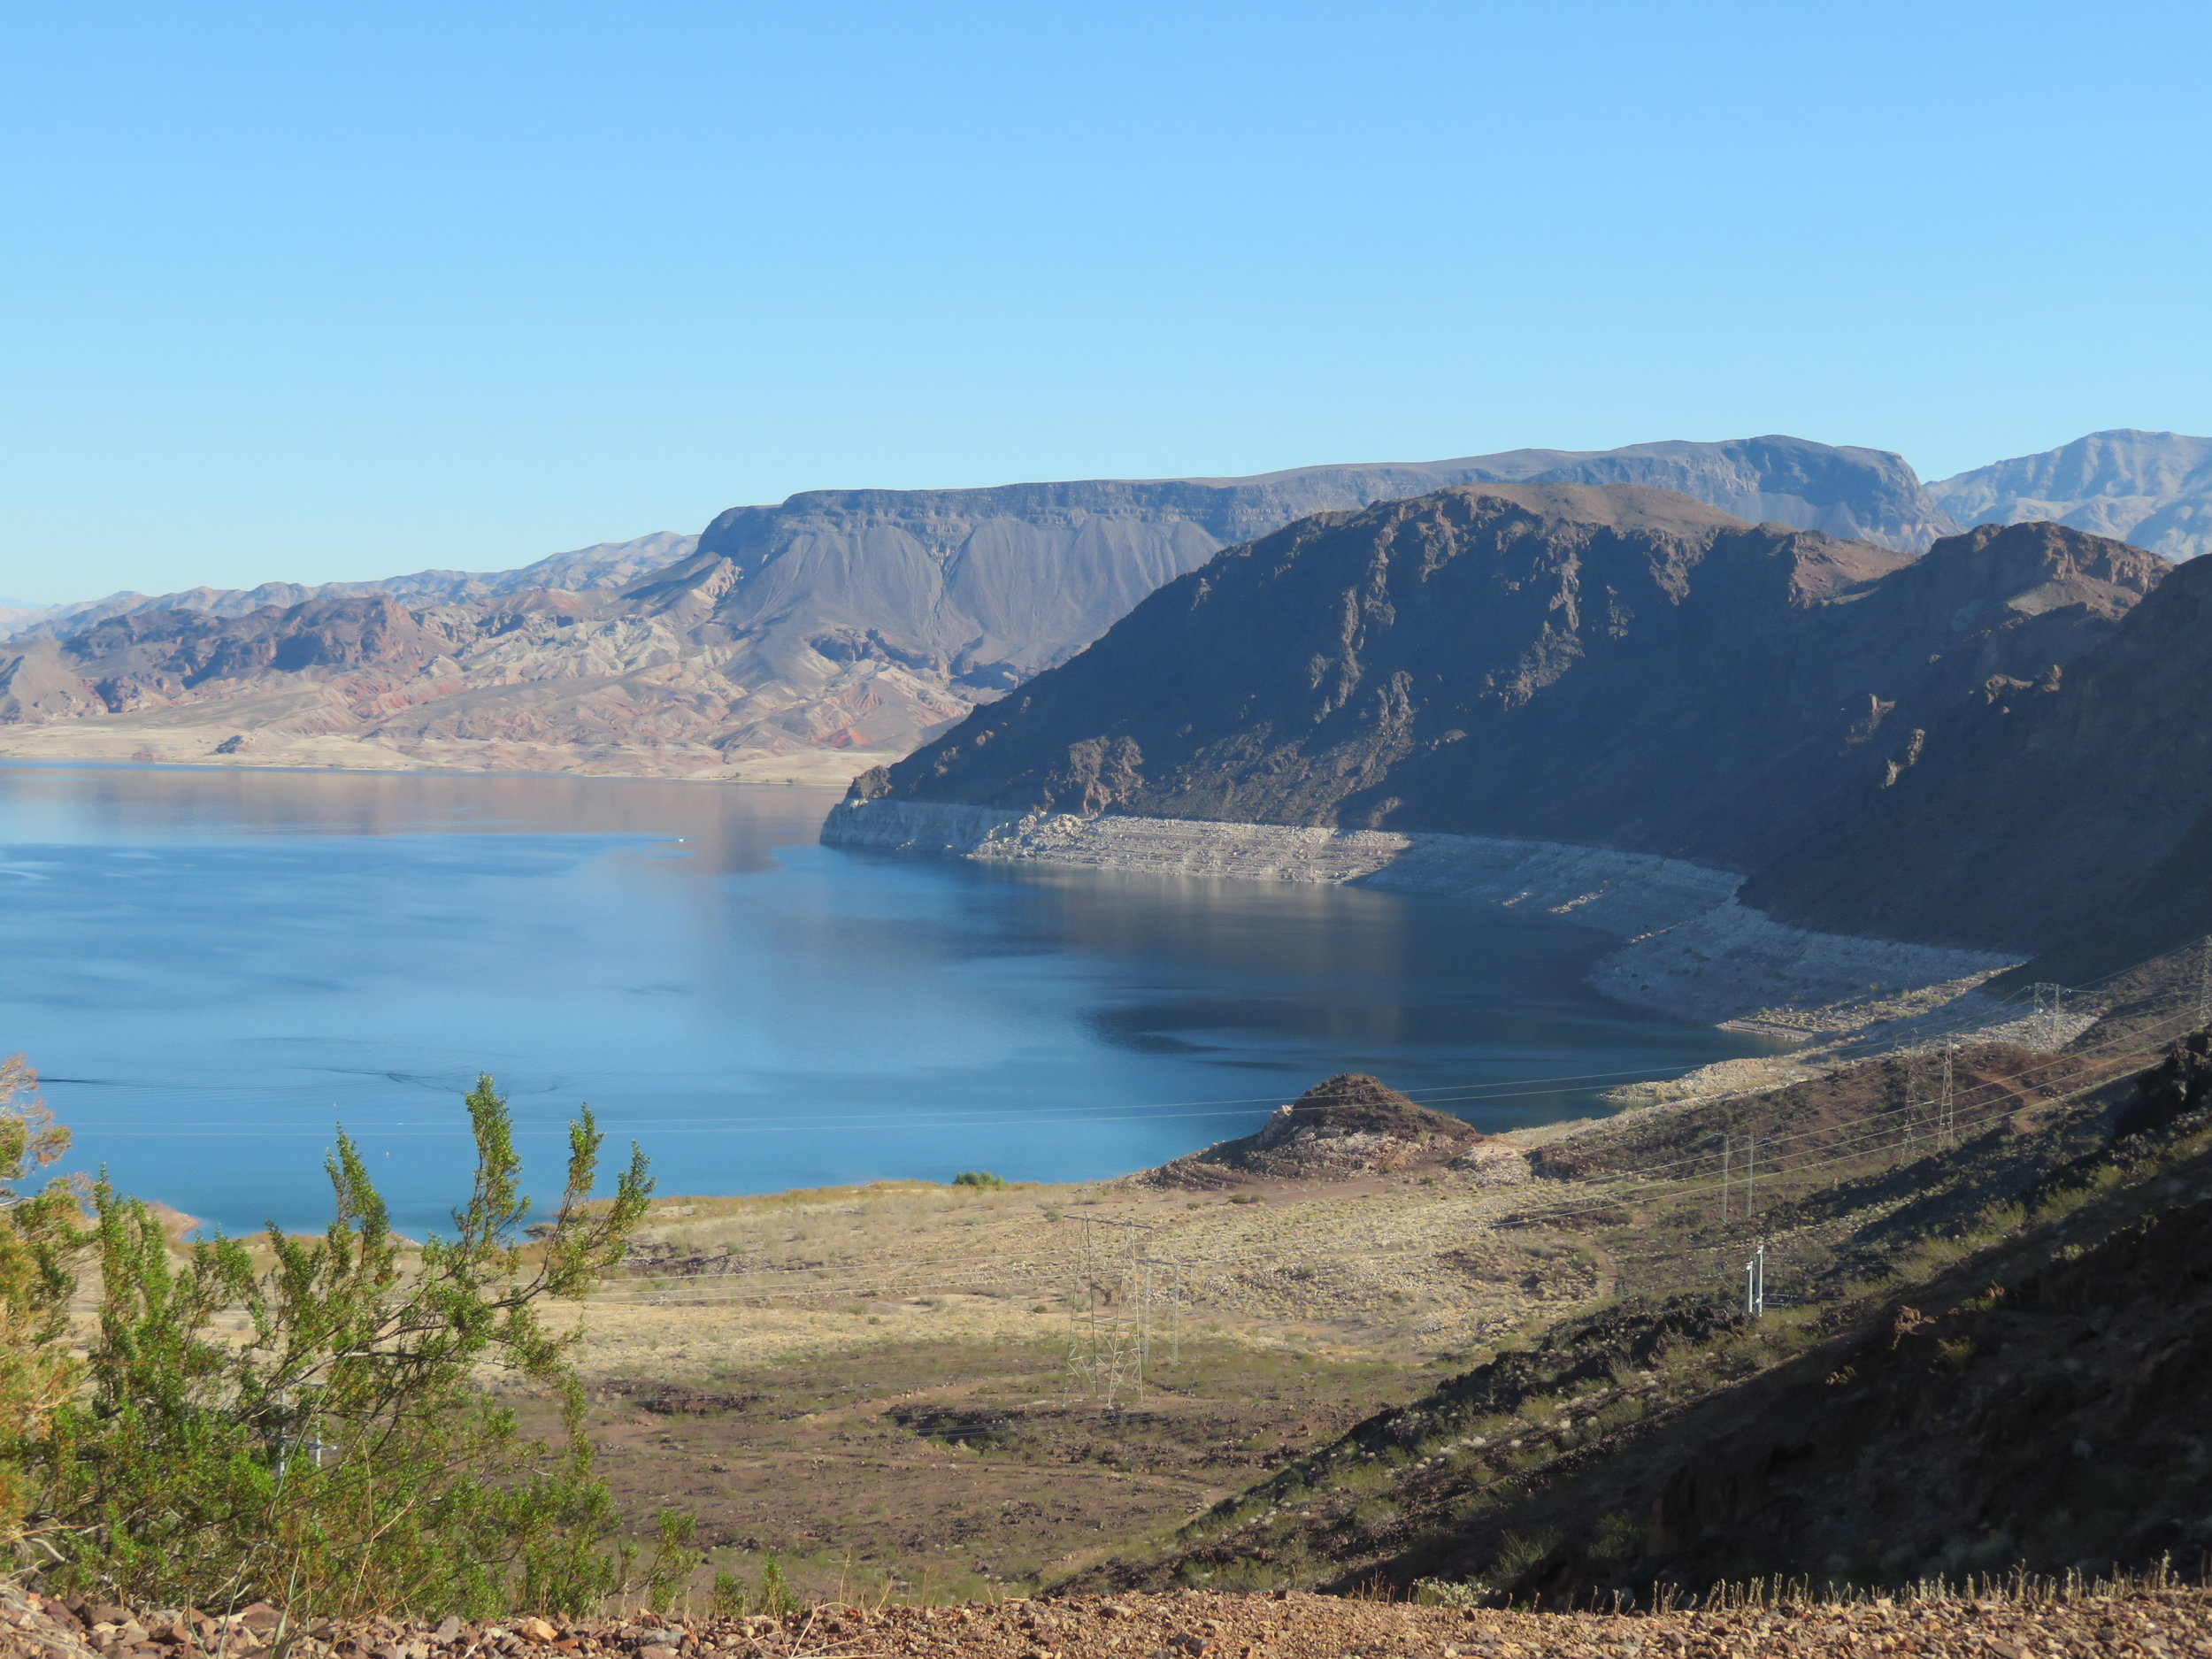 Lake Mead's white bathtub ring was very visible.